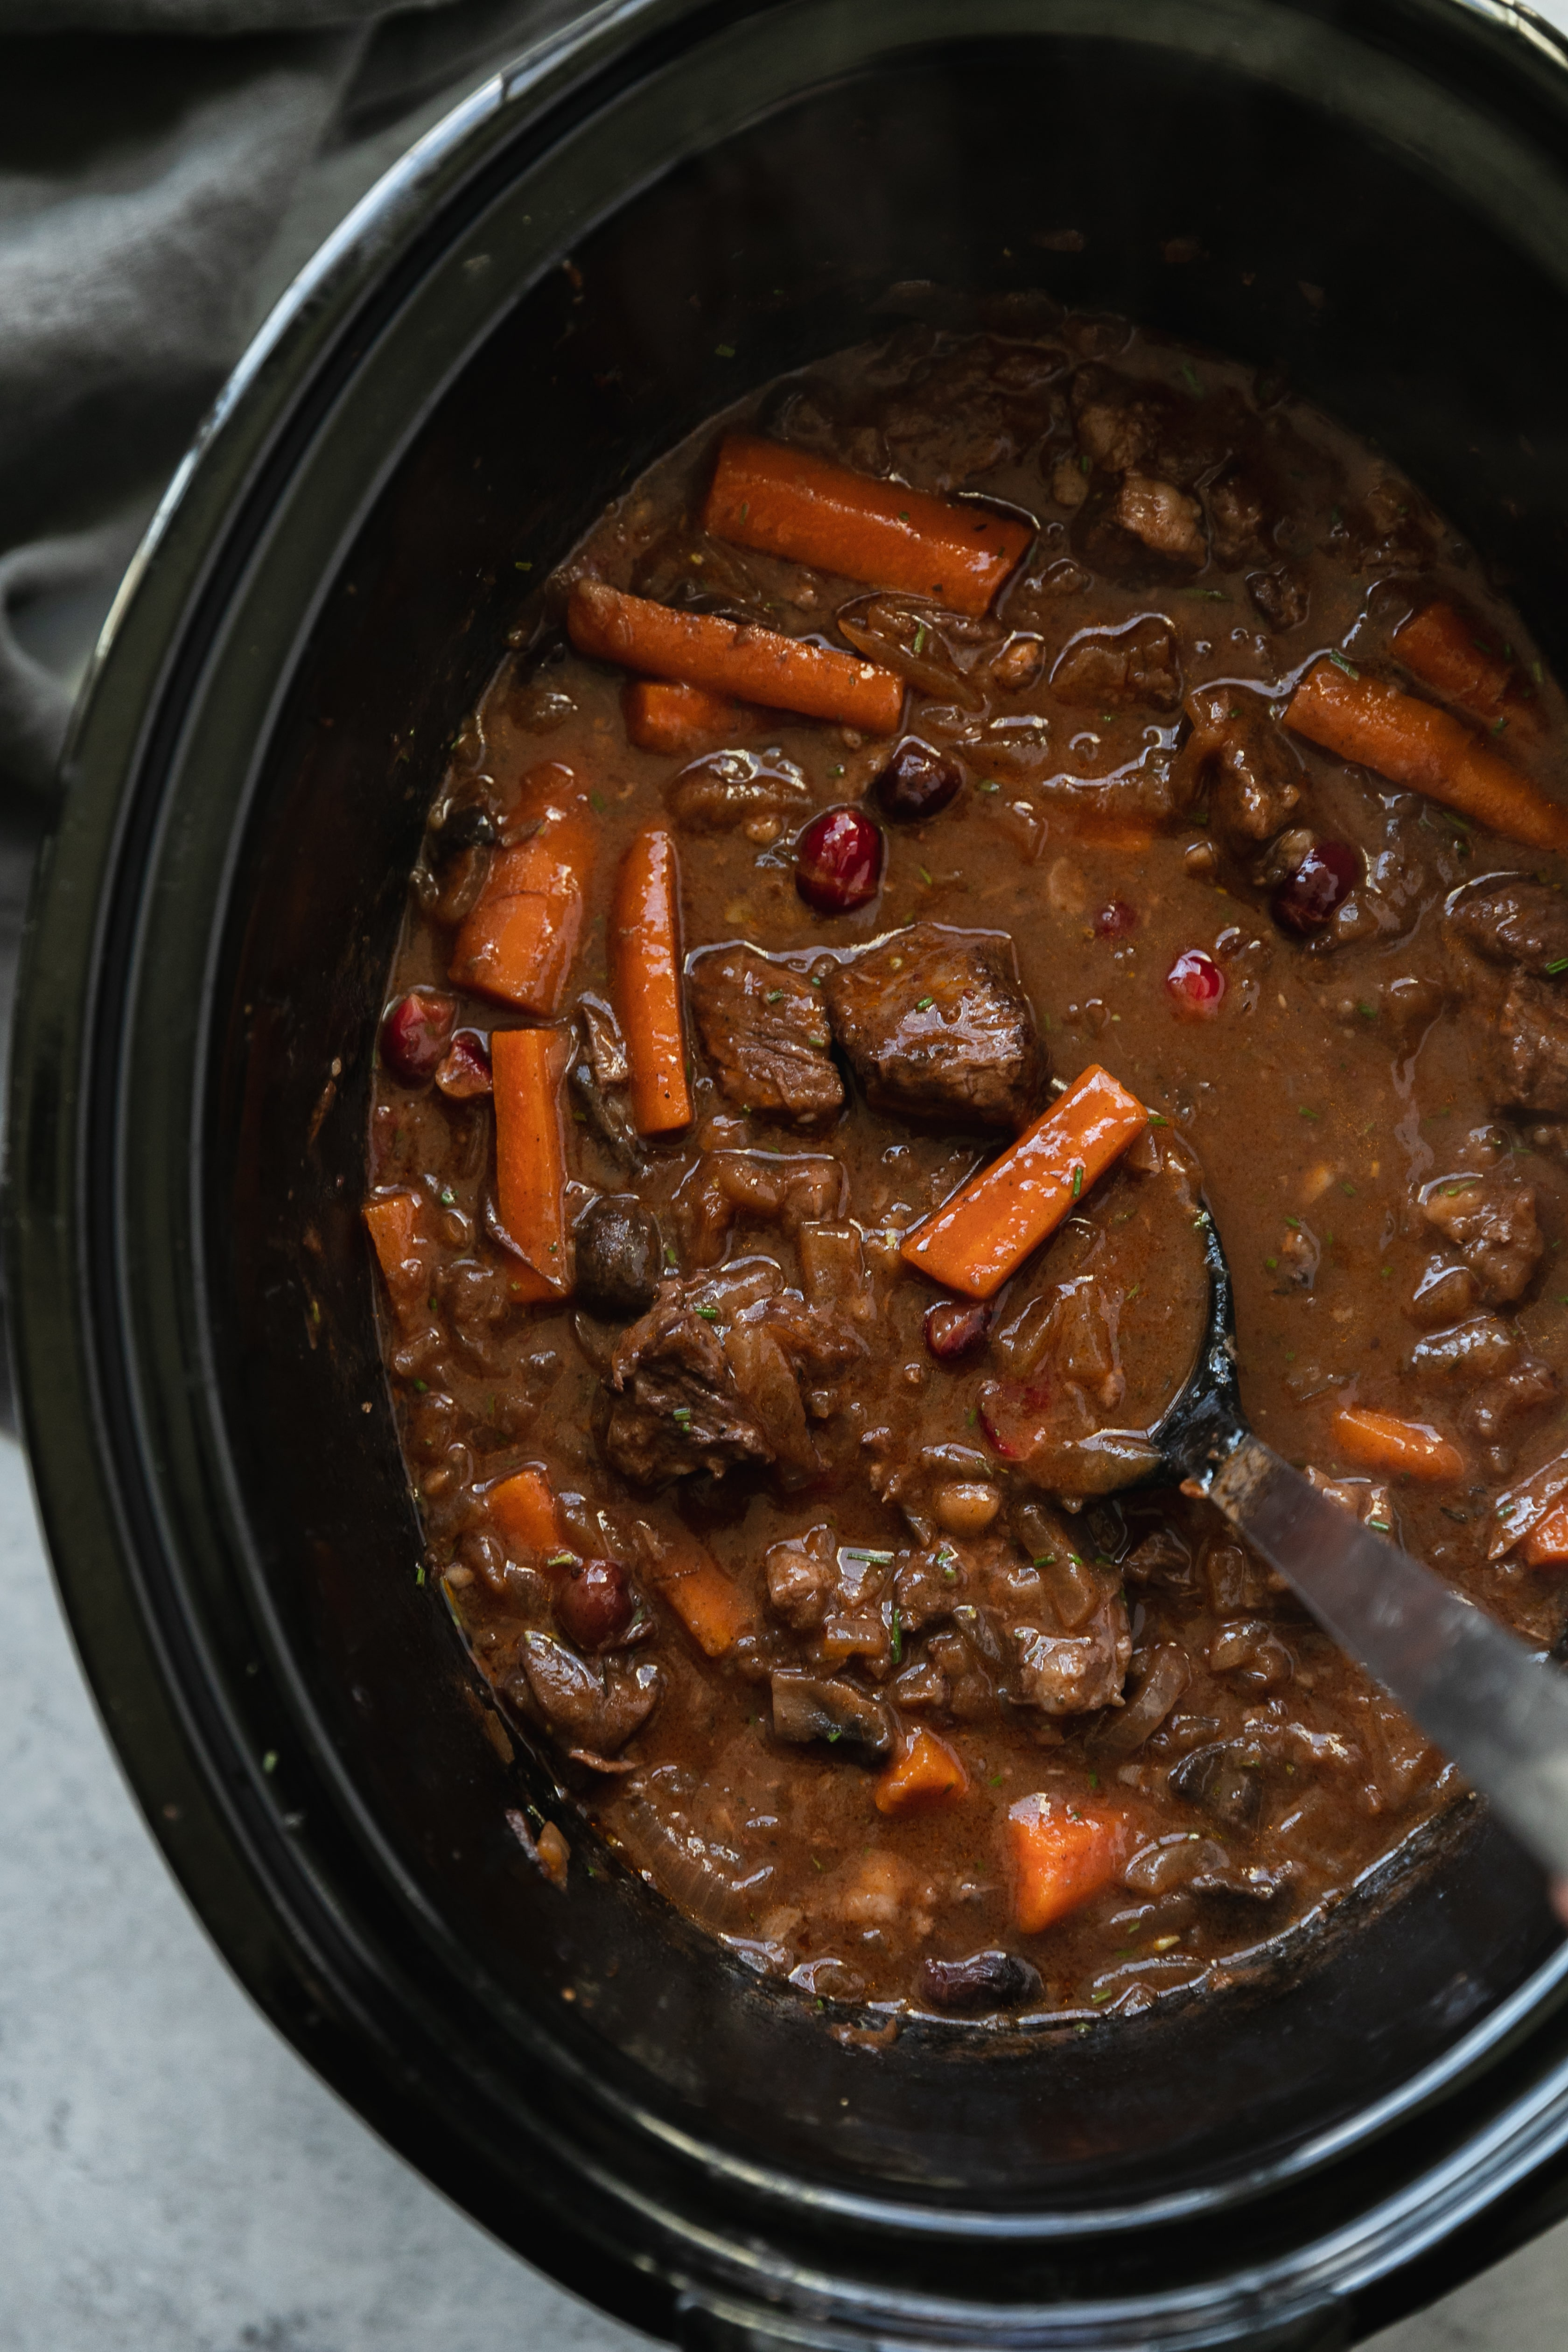 Overhead shot of a slow cooker filled with cranberry beef stew and a spoon resting in it